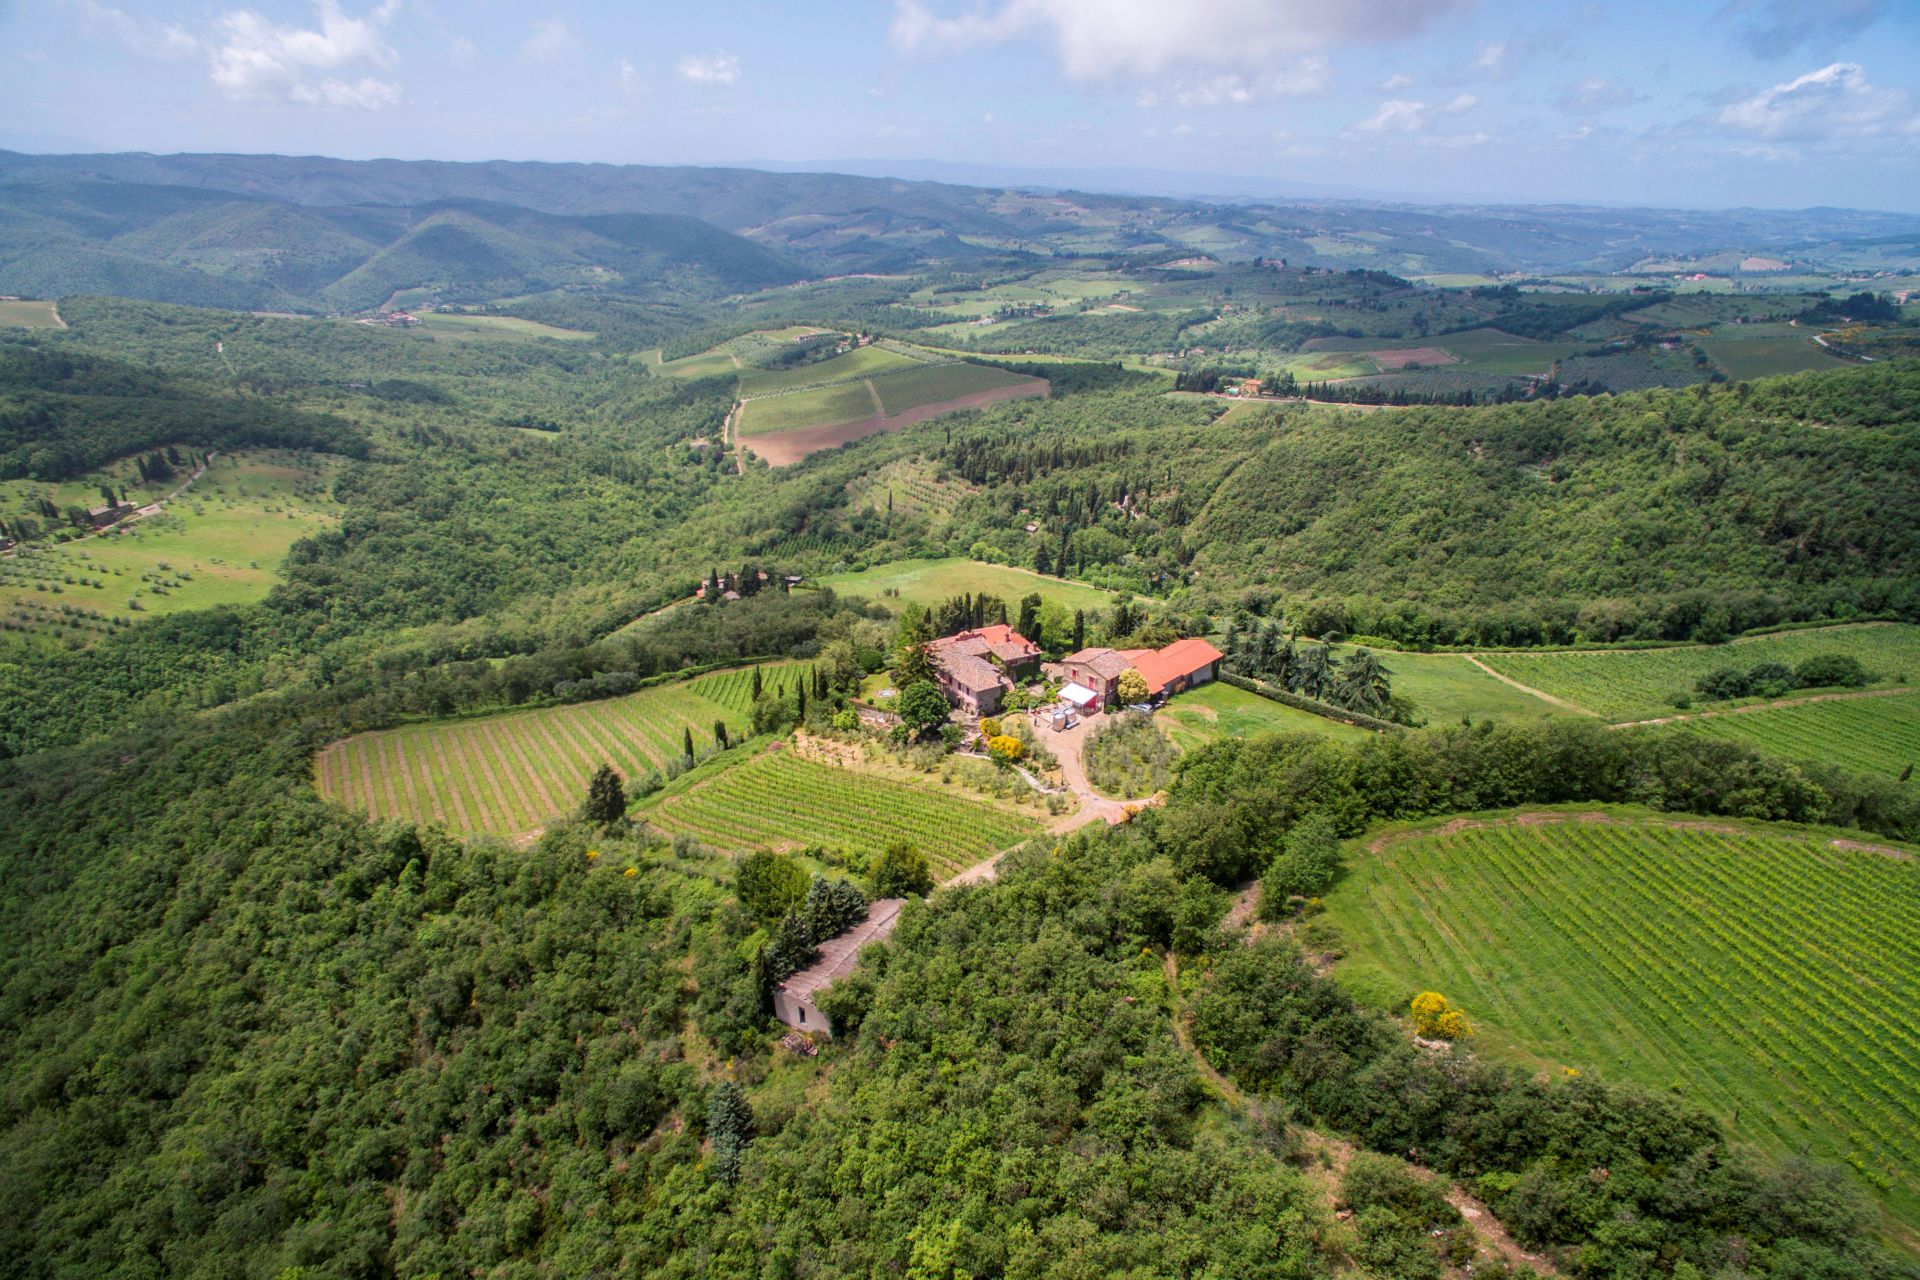 MULTI-AWARD WINNING WINERY FOR SALE CHIANTI CLASSICO